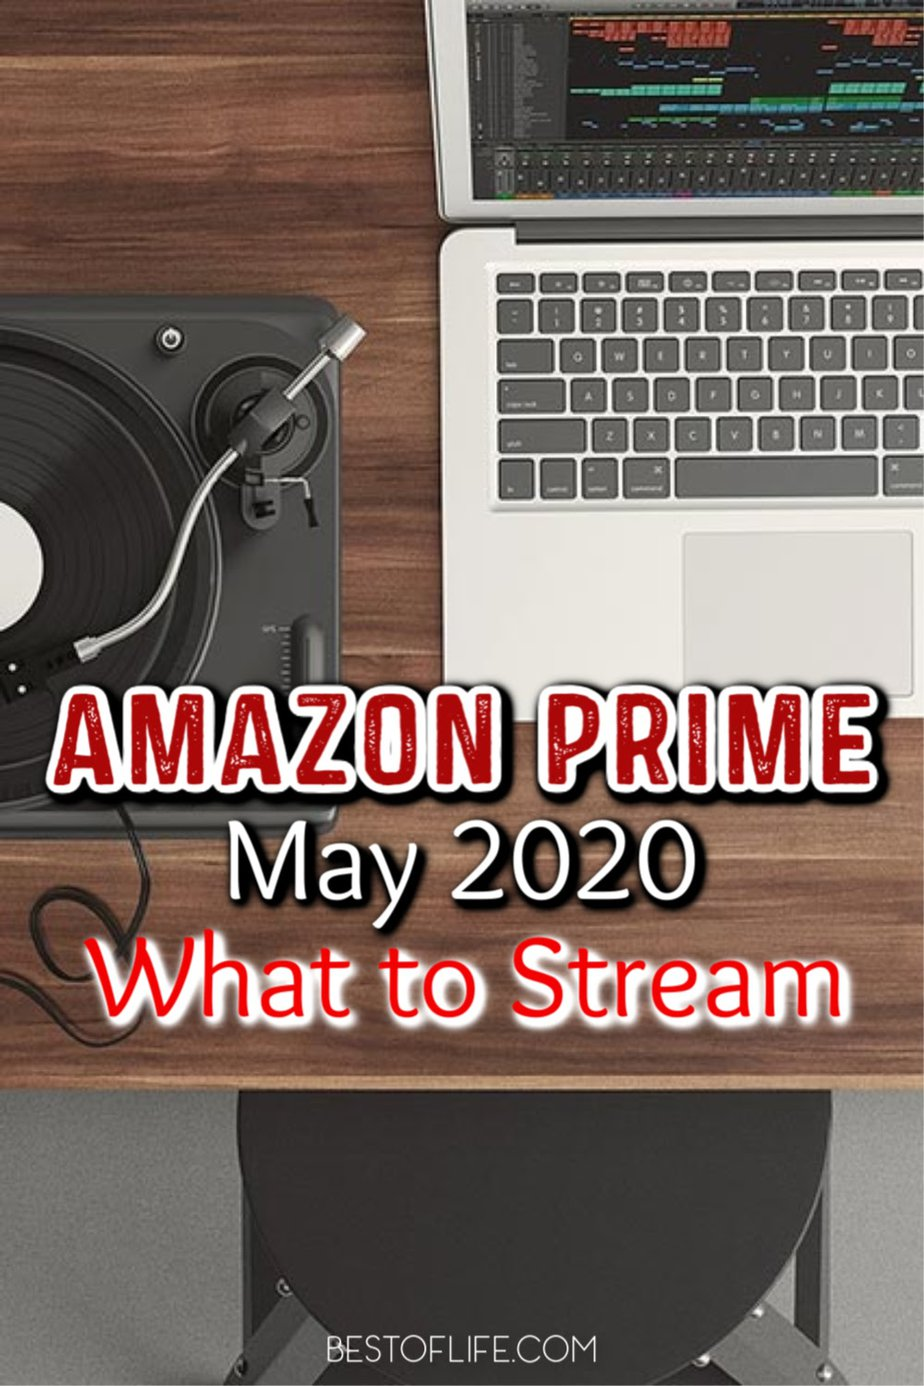 It is time to learn what to stream on Amazon Prime May 2020 so that you can keep up with the best original shows and movies on Prime. Amazon Prime Series to Watch | Amazon Prime Hacks | Amazon Prime Shows May 2020 | Amazon Prime Movies May 2020 | Things to Watch May 2020 #amazonprime #may2020